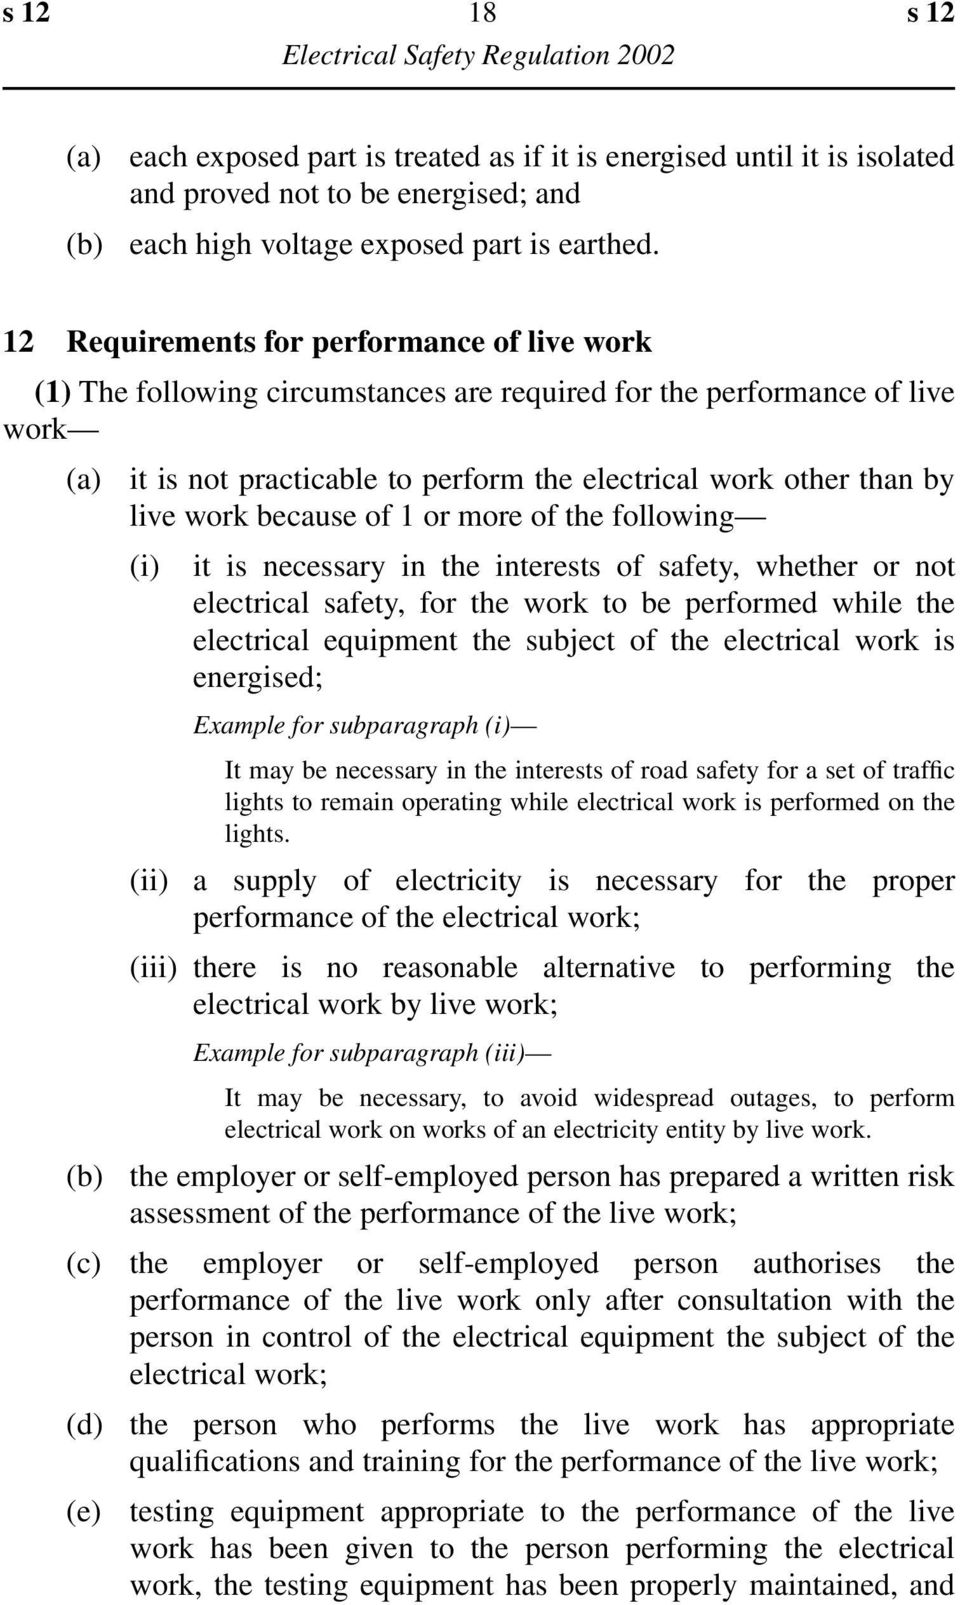 work because of 1 or more of the following (i) it is necessary in the interests of safety, whether or not electrical safety, for the work to be performed while the electrical equipment the subject of